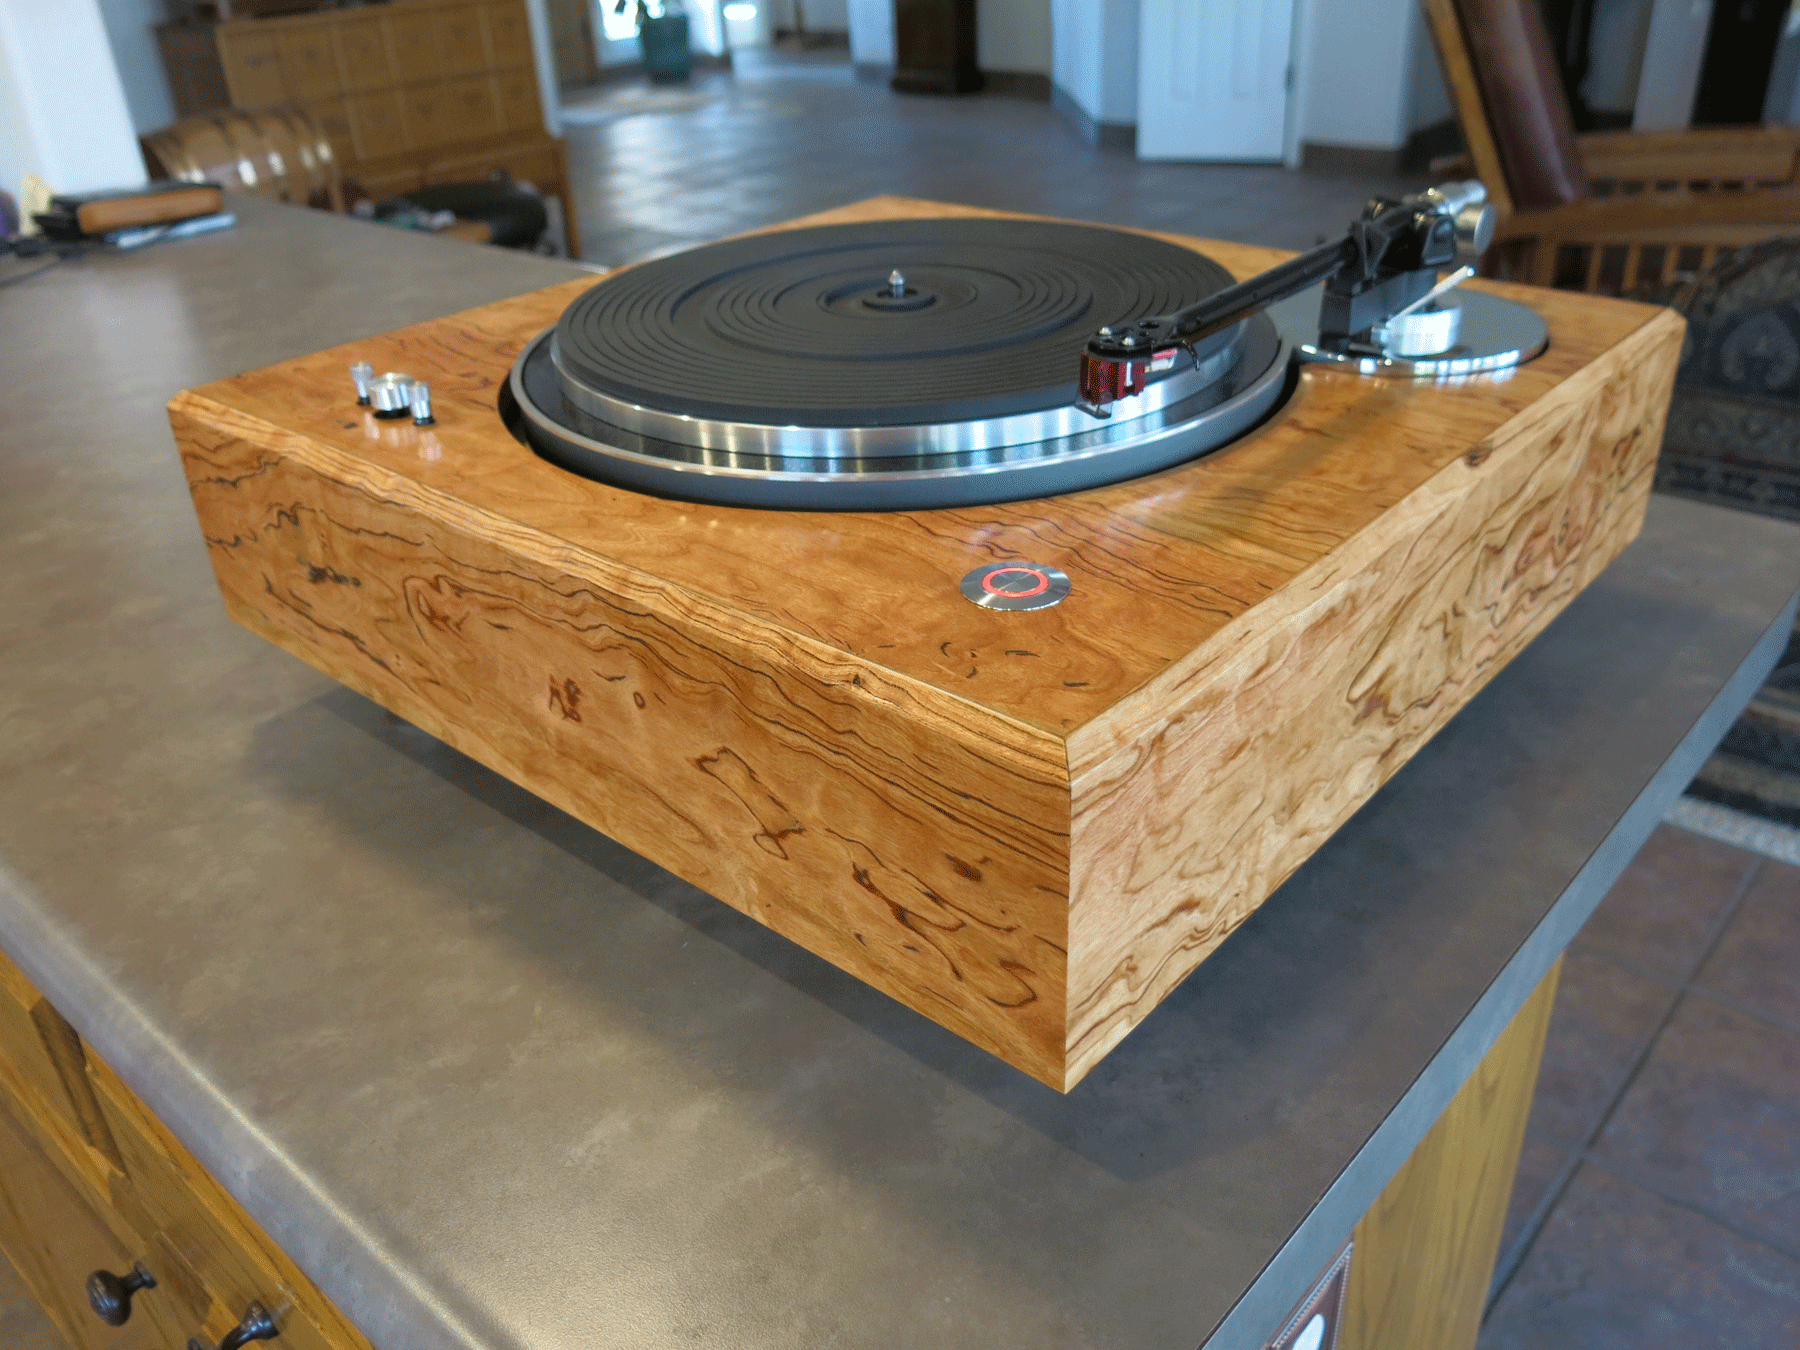 ../../images/woodwork/turntable/IMG_1312.png